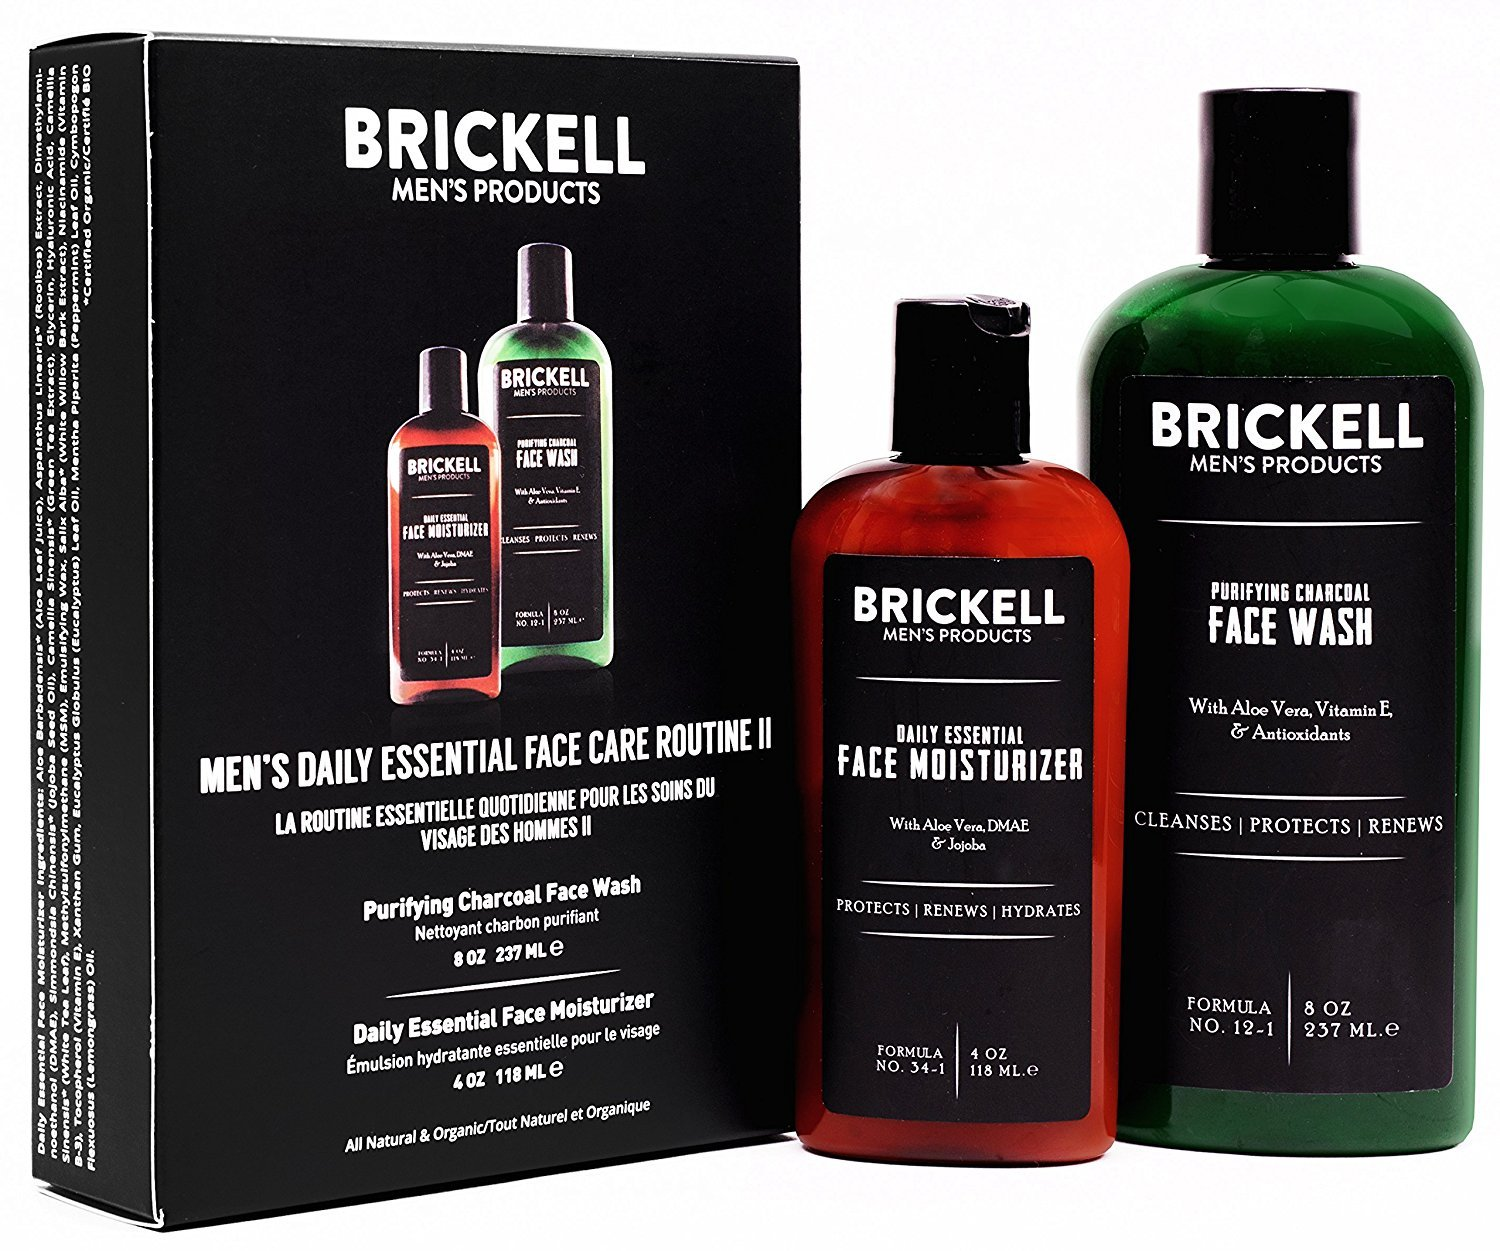 Brickell Mens Daily Essential Face Care Routine II, Purifying Charcoal Face Wash and Daily Essential Face Moisturizer, Natural and Organic, Scented